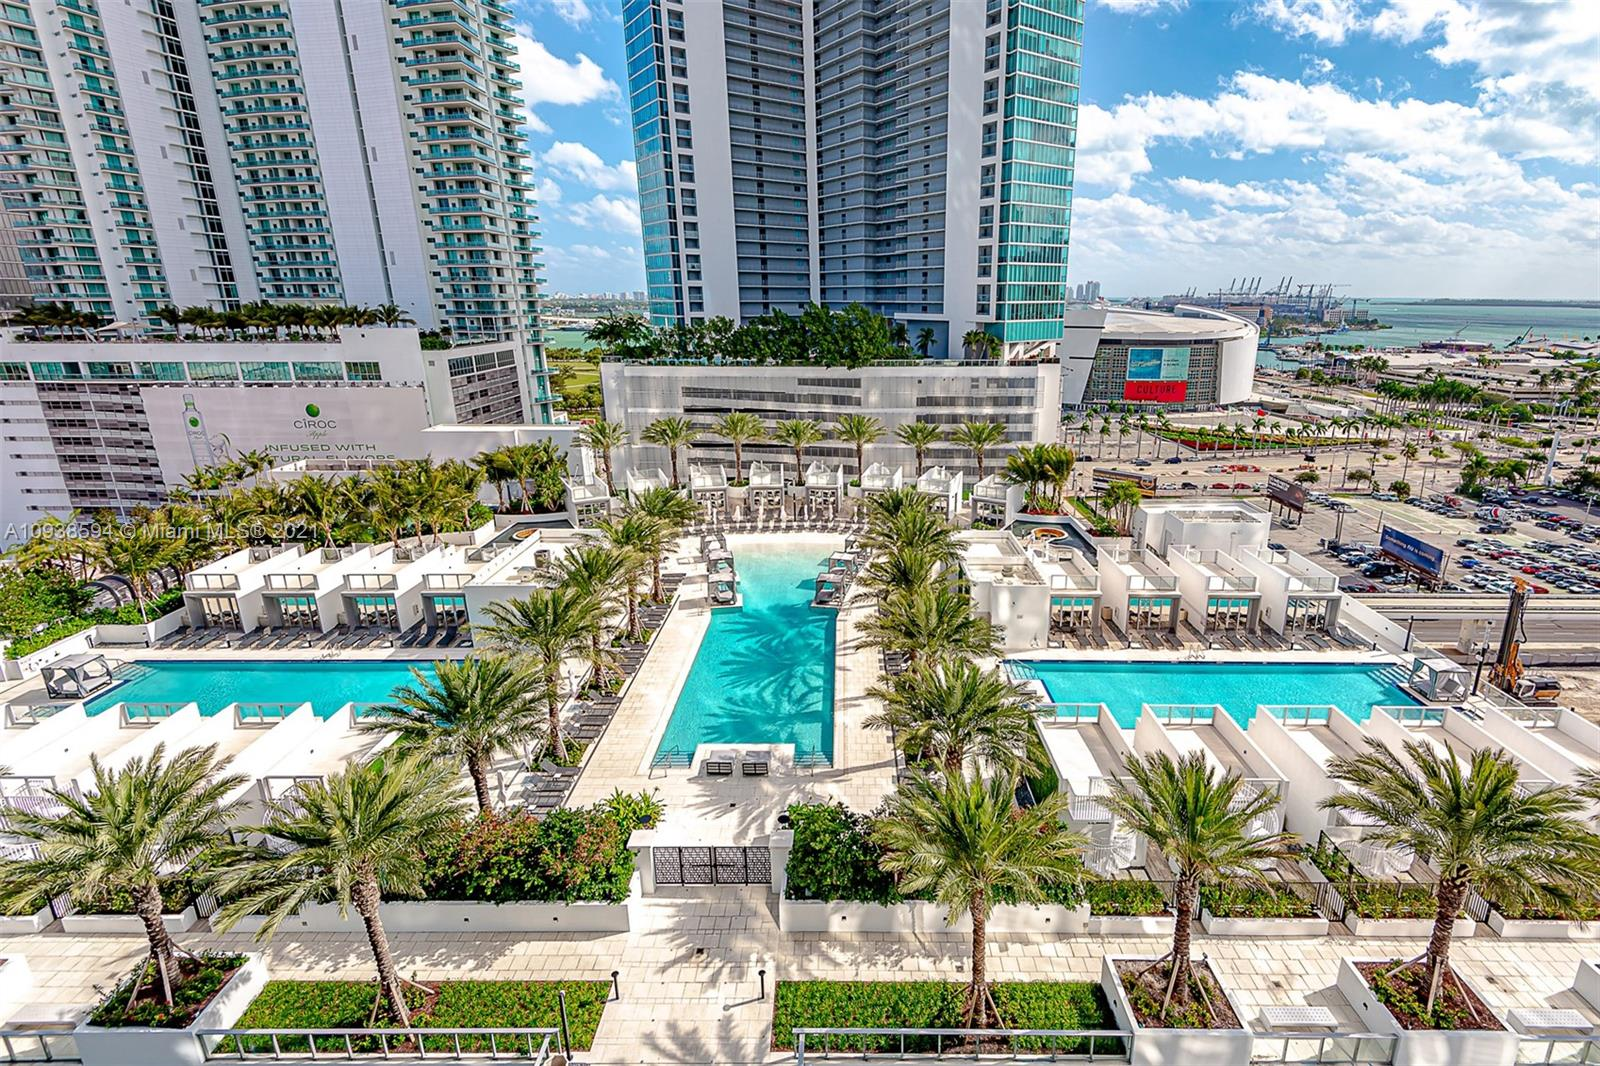 Finally one of the most sought after projects is finished - Miami World Center - New unit never lived in , Luxury unit 2 + Den /3 bath(den is enclosed and can be used as 3rd bedroom)Over $75,000 in upgrades on the unit, electric shades all around, custom made closets, ( featuring European kitchen Cabinetry ,10 foot floor to ceiling windows, oversize balcony with water views, facing pool area , best amenities in the area: Basketball Half-Court, Racquetball Court, Relaxation Areas: Conservatory, Relaxation Lounge, Spa/Salon, Indoor Sports Center(State-of-the-art Fitness Center ,Boxing Studio, and Aerobics Area), Entertainment Center,